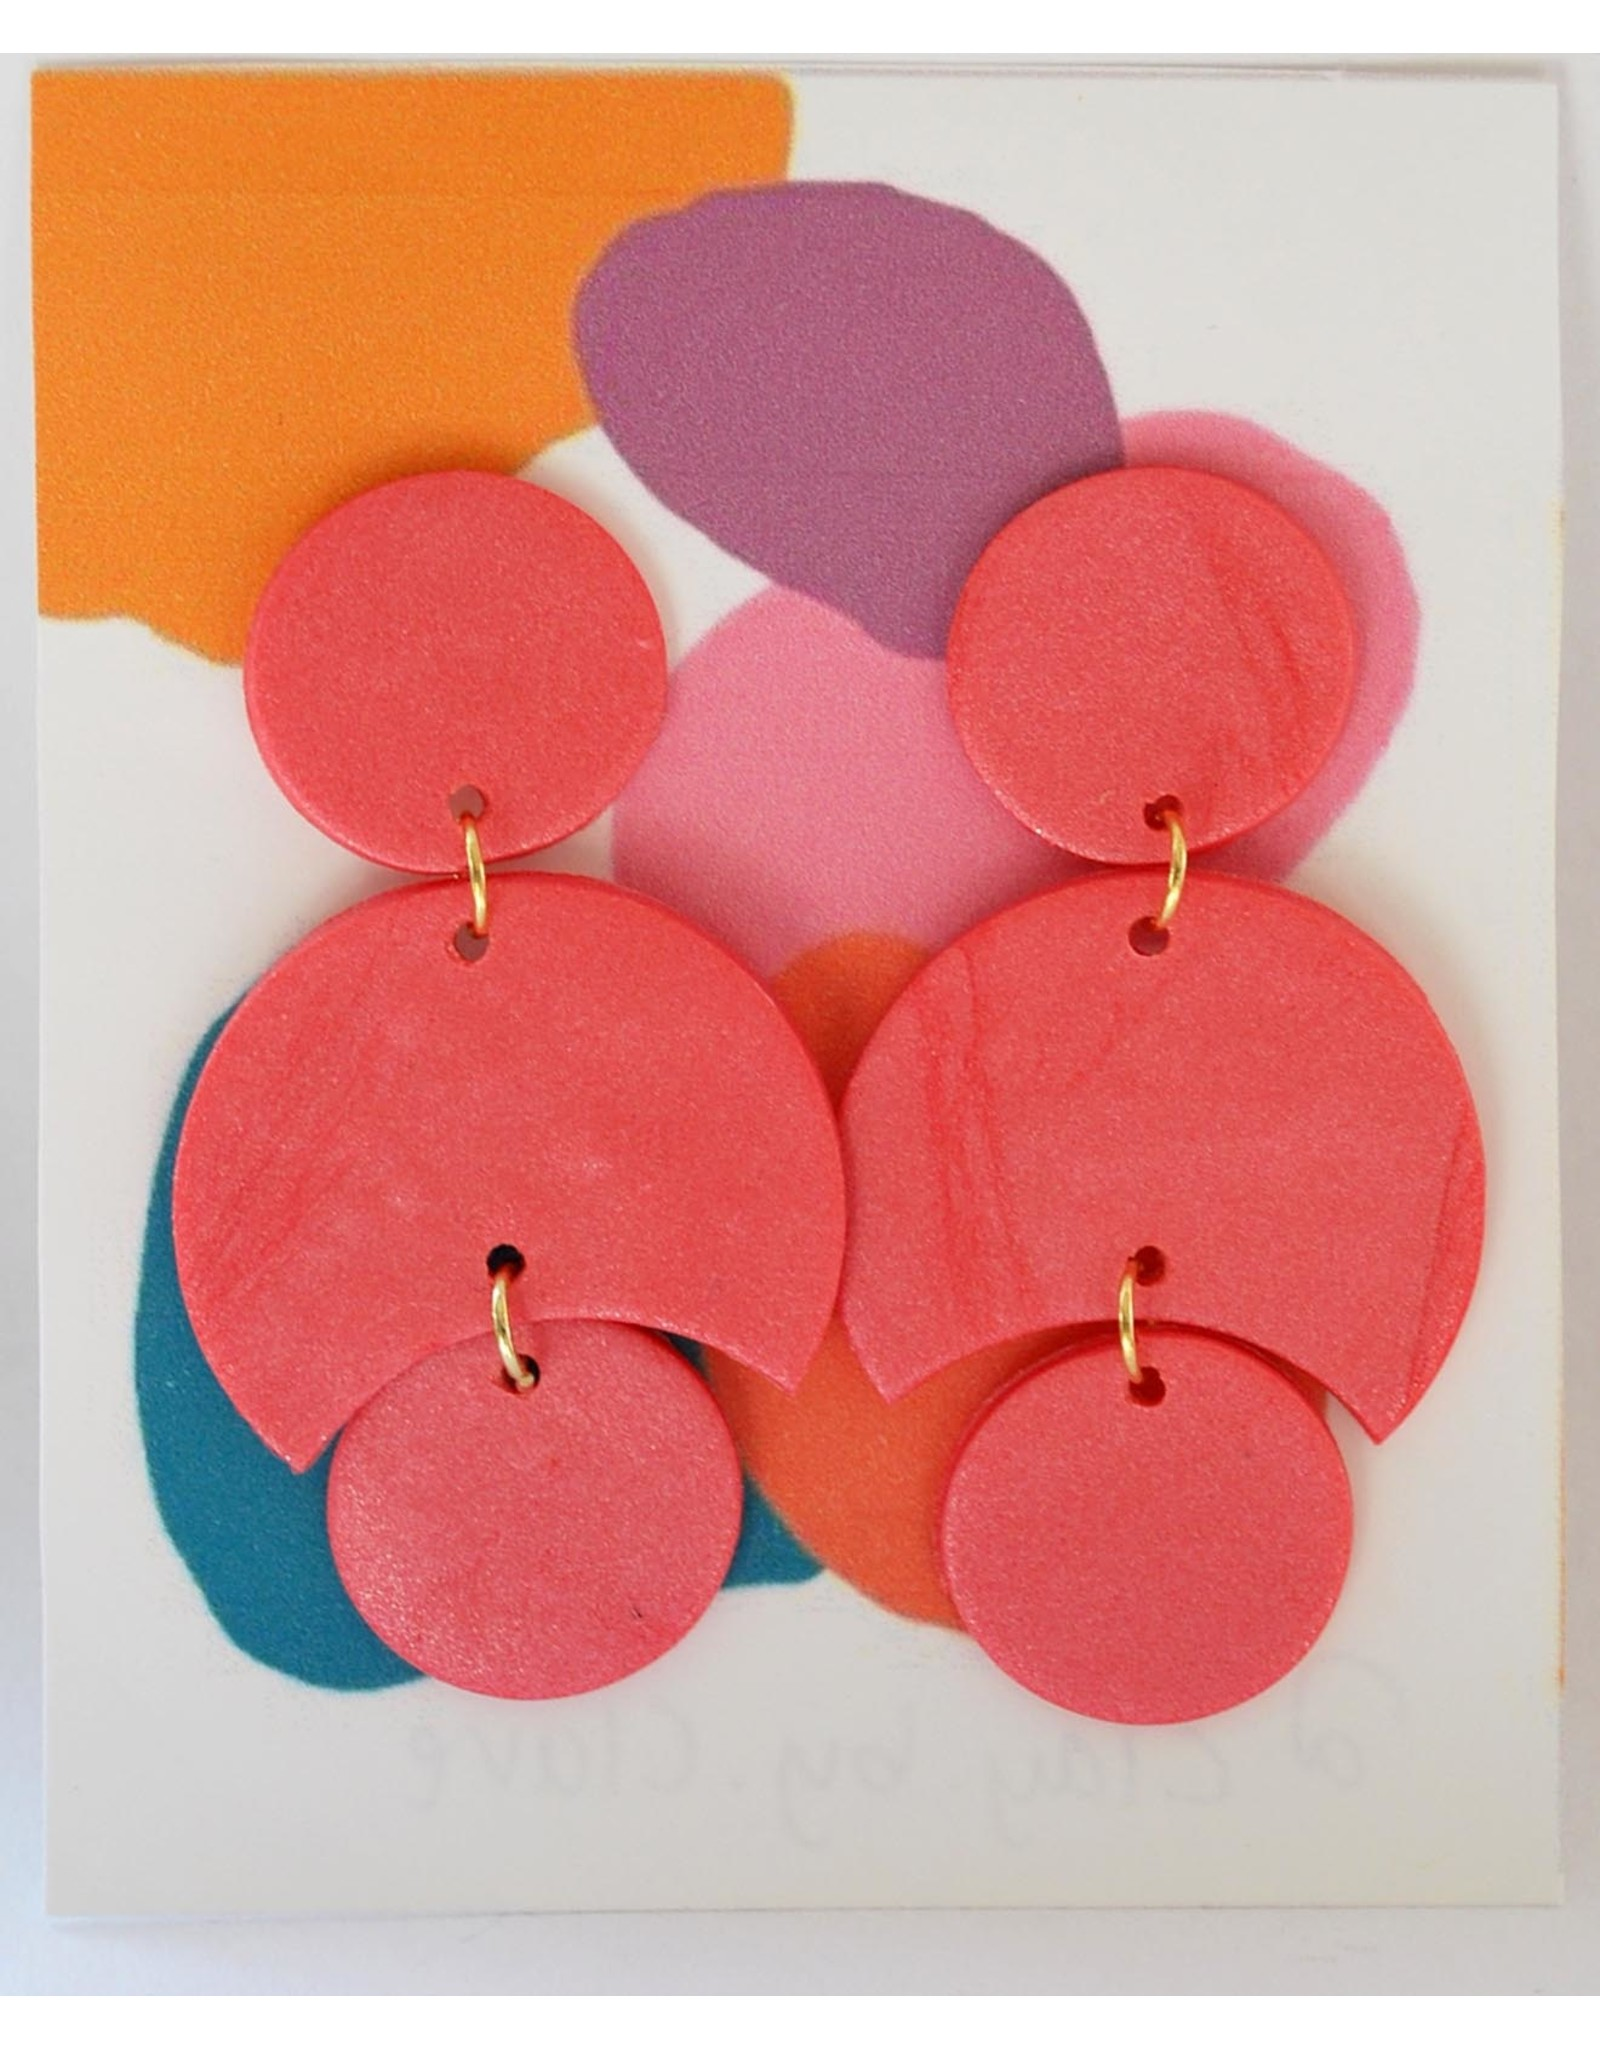 Salmon Pink Clay Earrings by Clare Cinelli